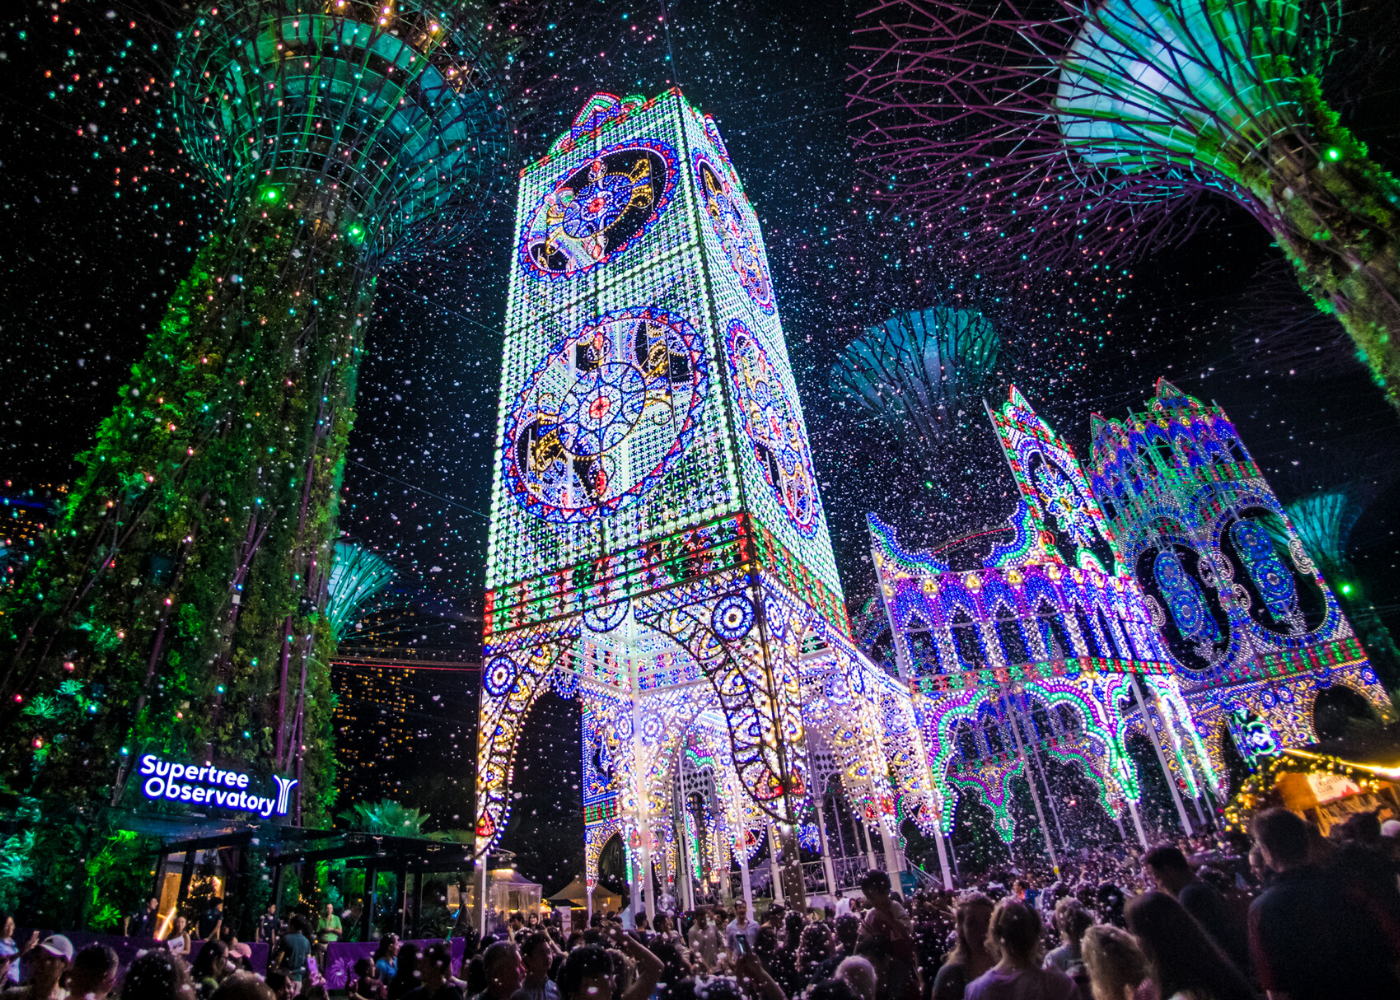 Ring in the holiday magic at Christmas Wonderland for all the festive feels